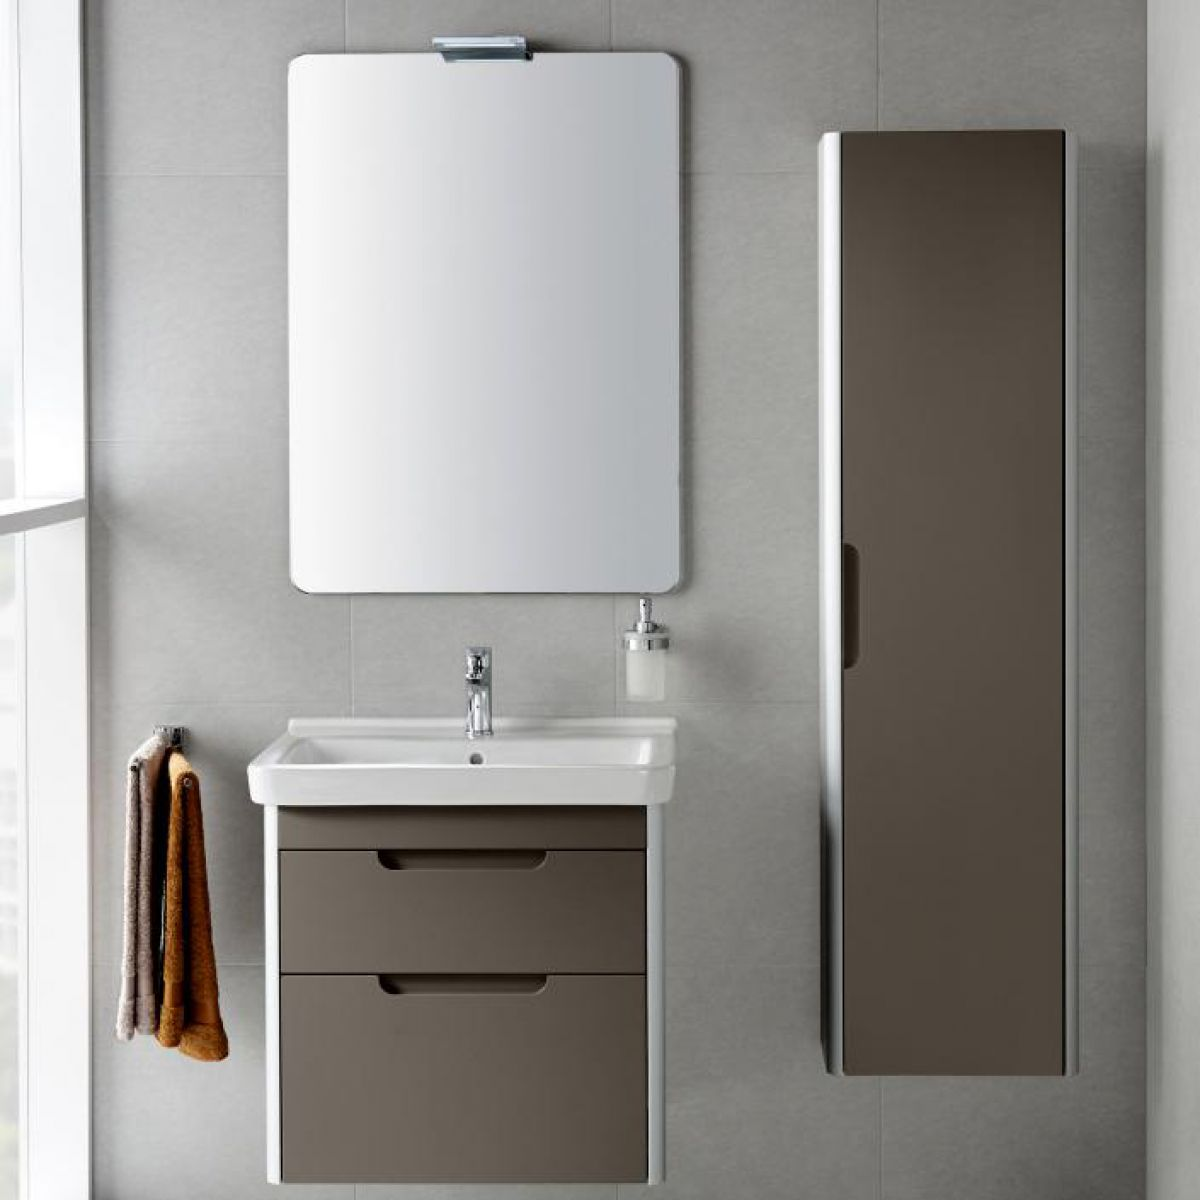 Roca Bathroom Accessories Roca Dama N Bathroom Mirror Uk Bathrooms